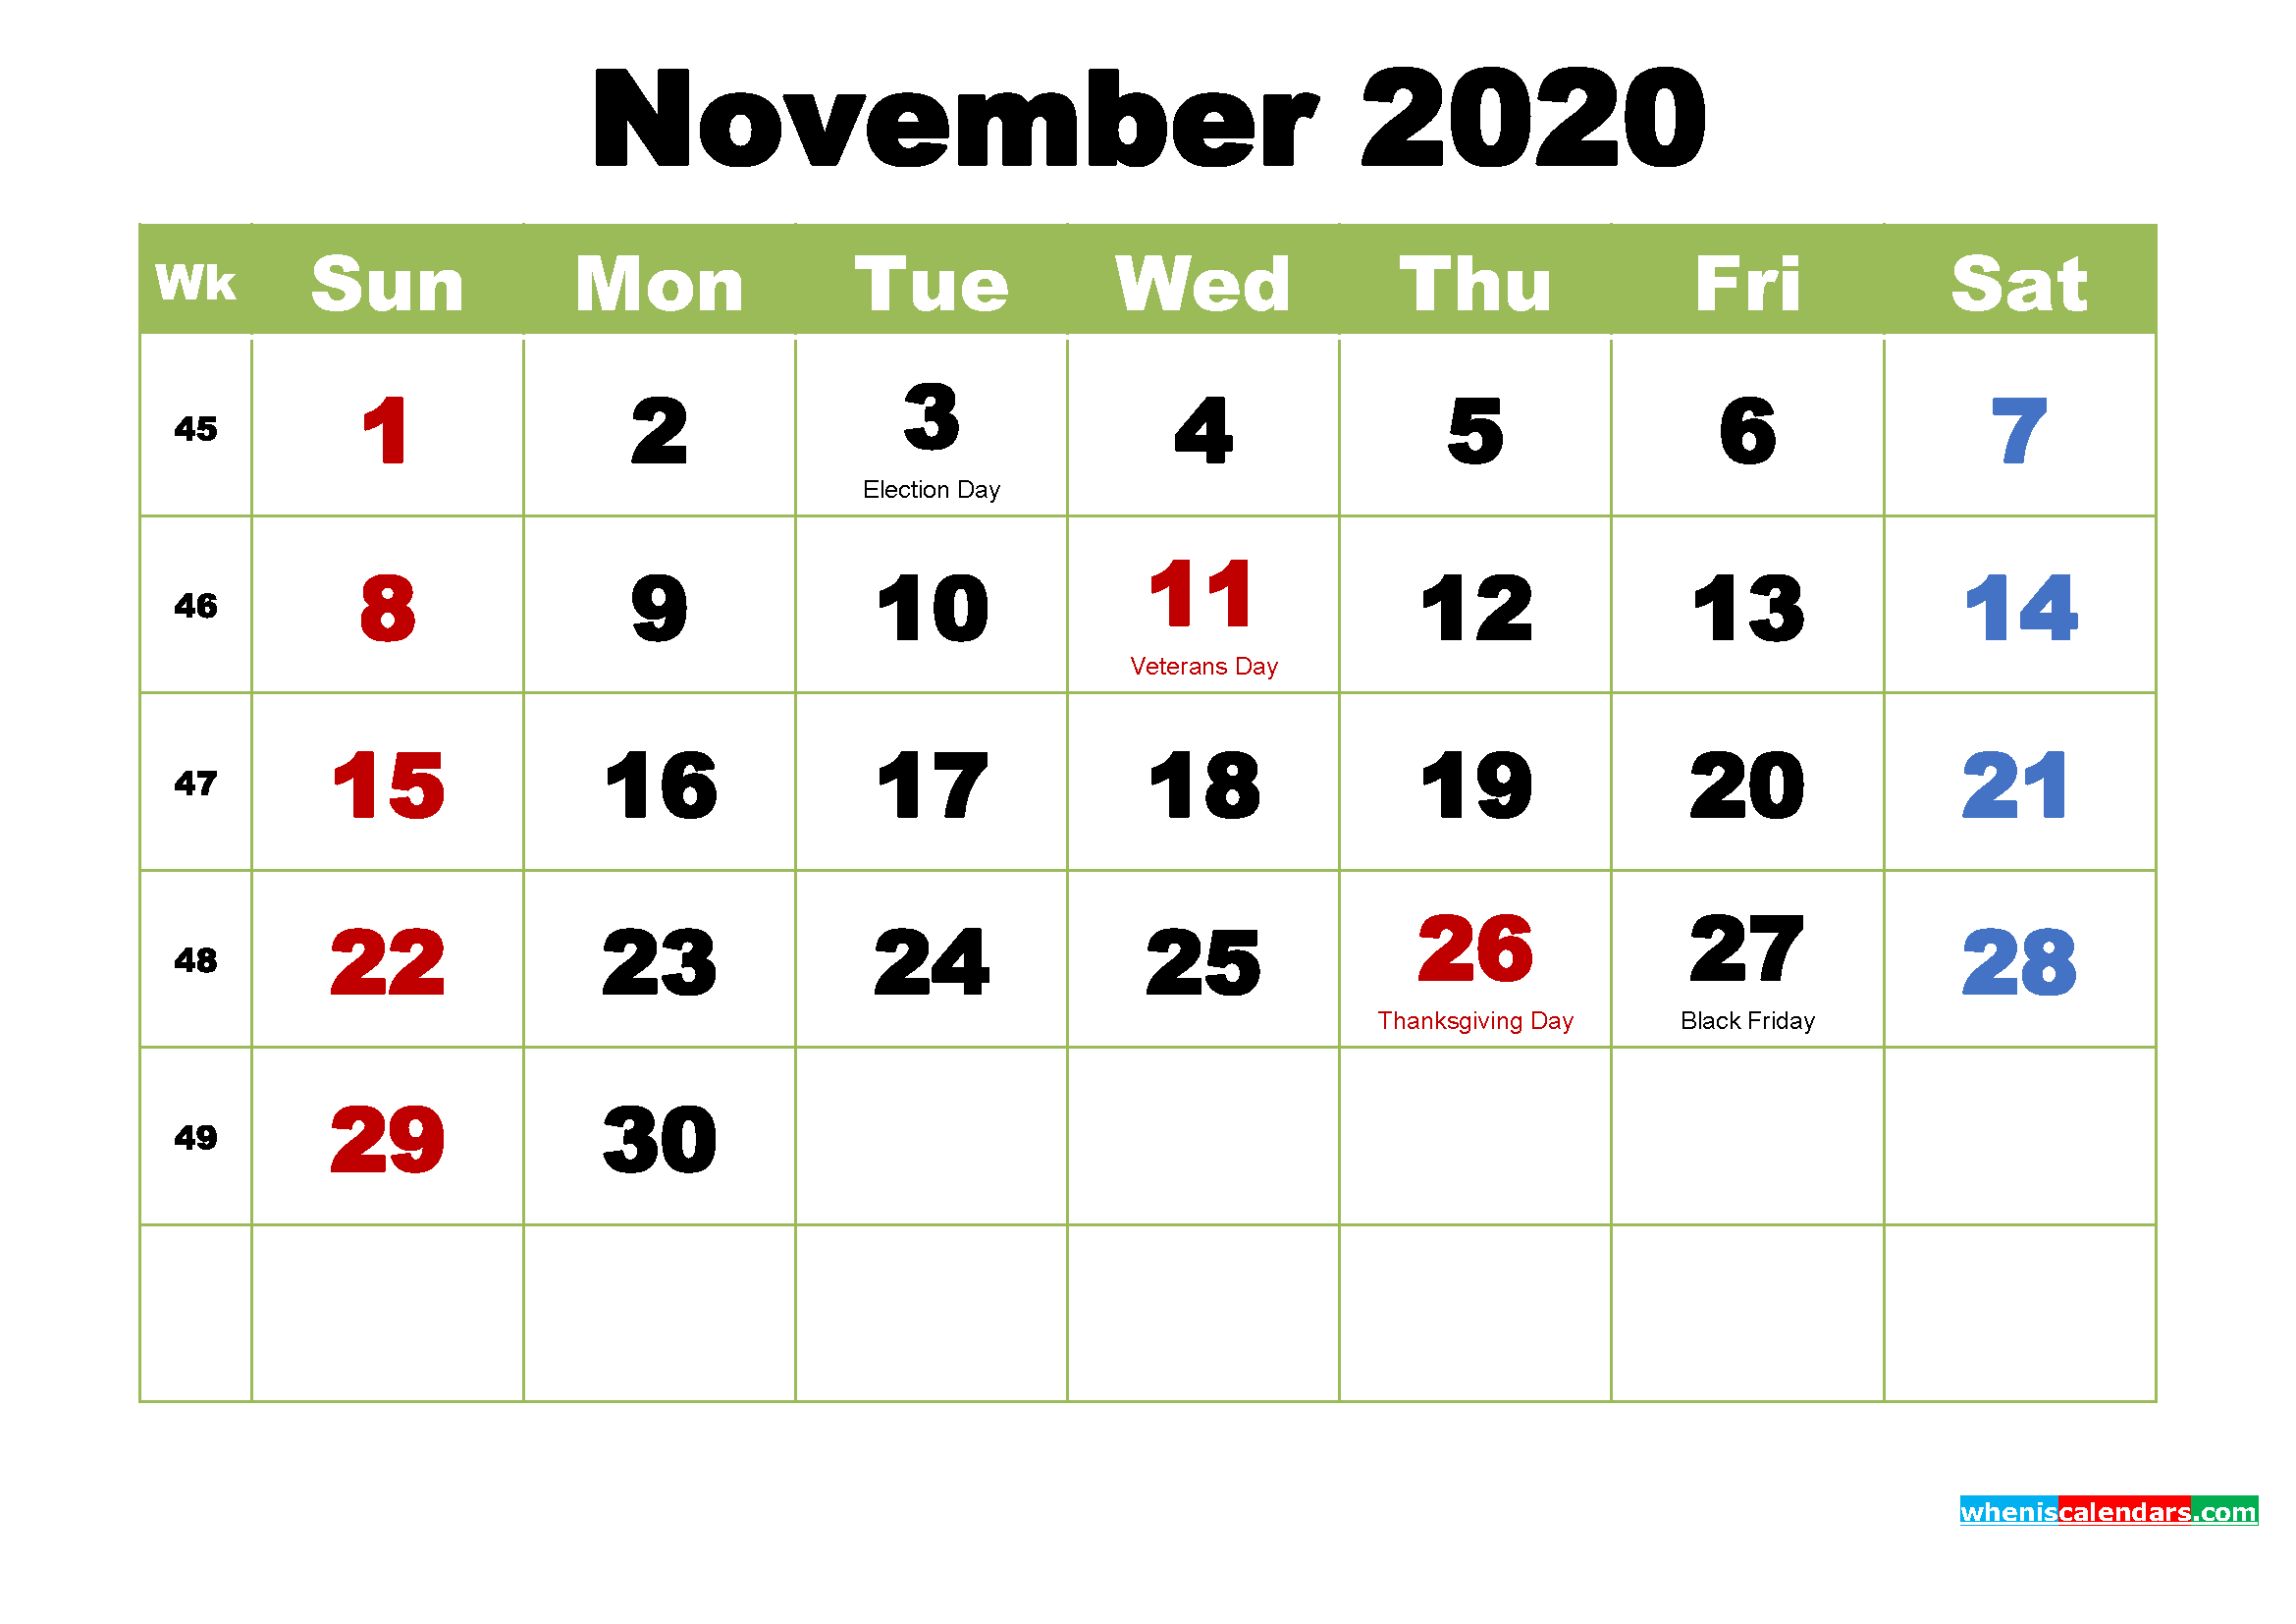 November 2020 Calendar with Holidays Wallpaper